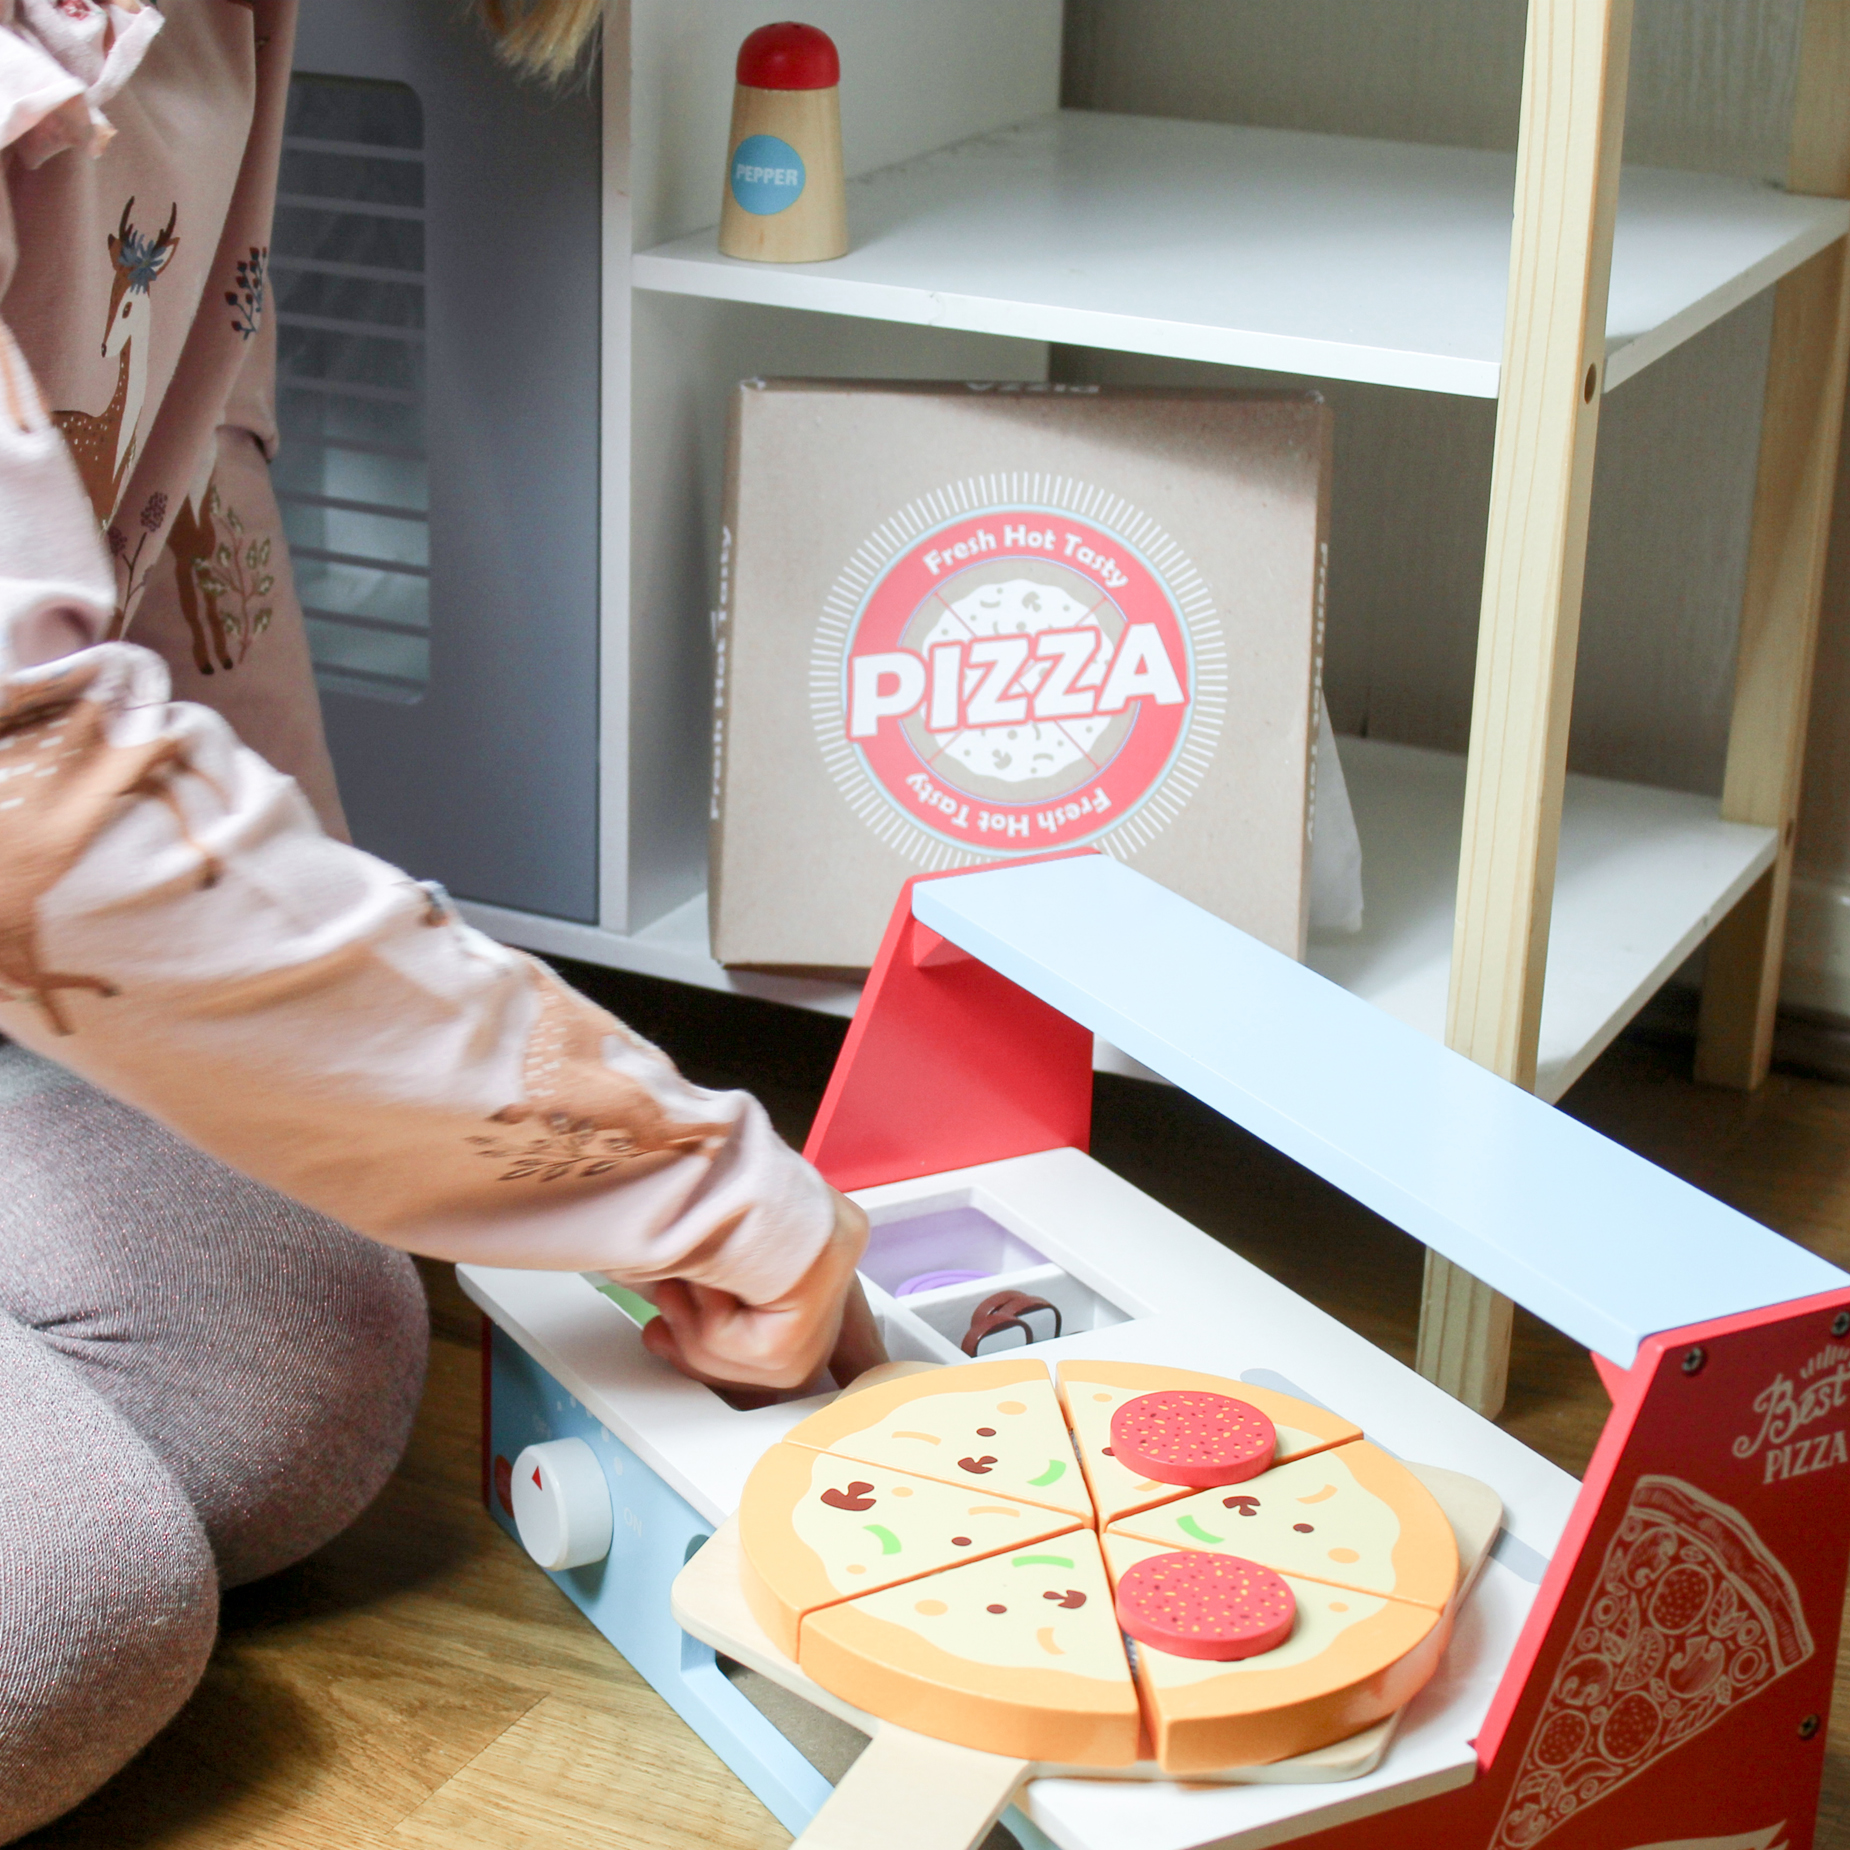 kid playing with wooden pizza base and wooden food/vegetables toy